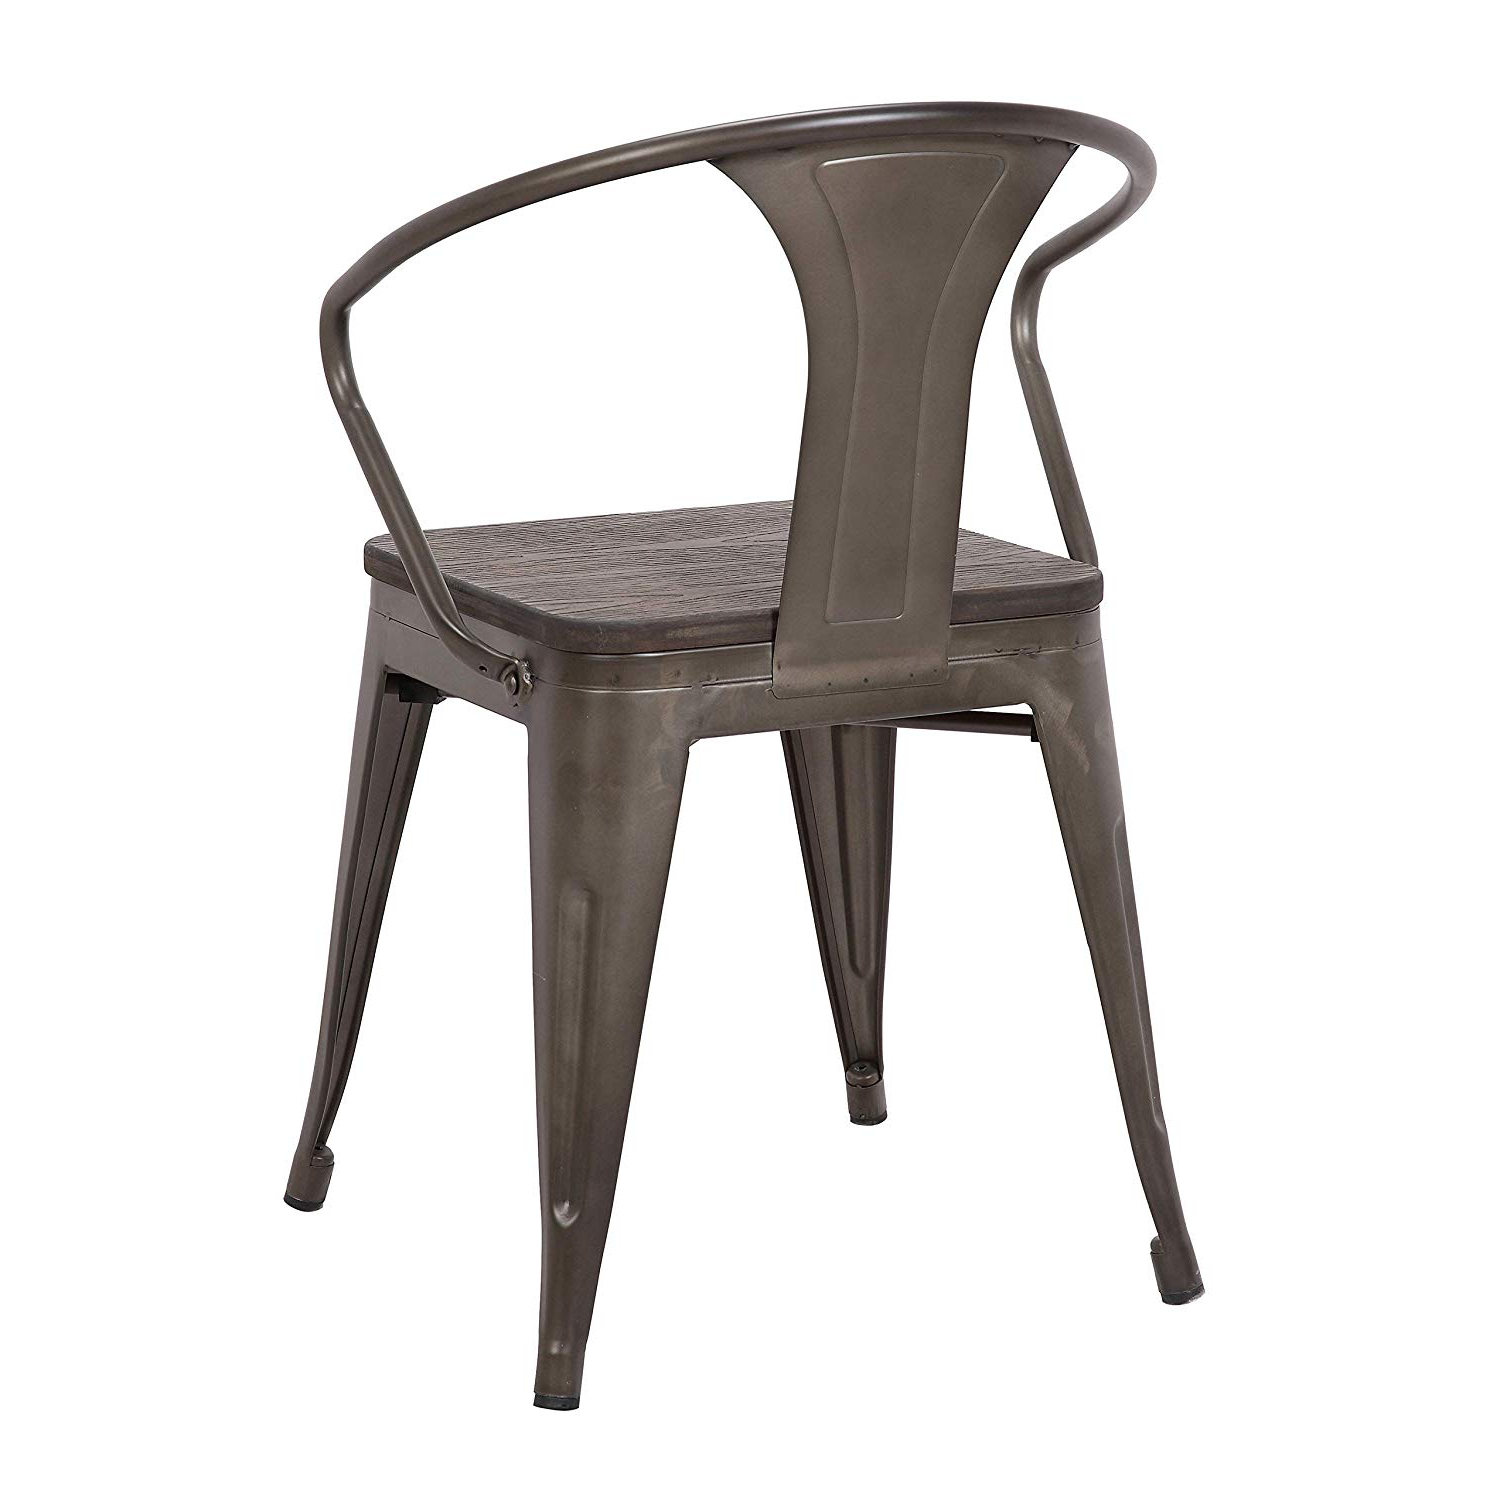 Well Liked Amazon – Lumisource Waco Chair In Antique And Espresso For Vintage Cream Frame And Espresso Bamboo Dining Tables (View 21 of 30)